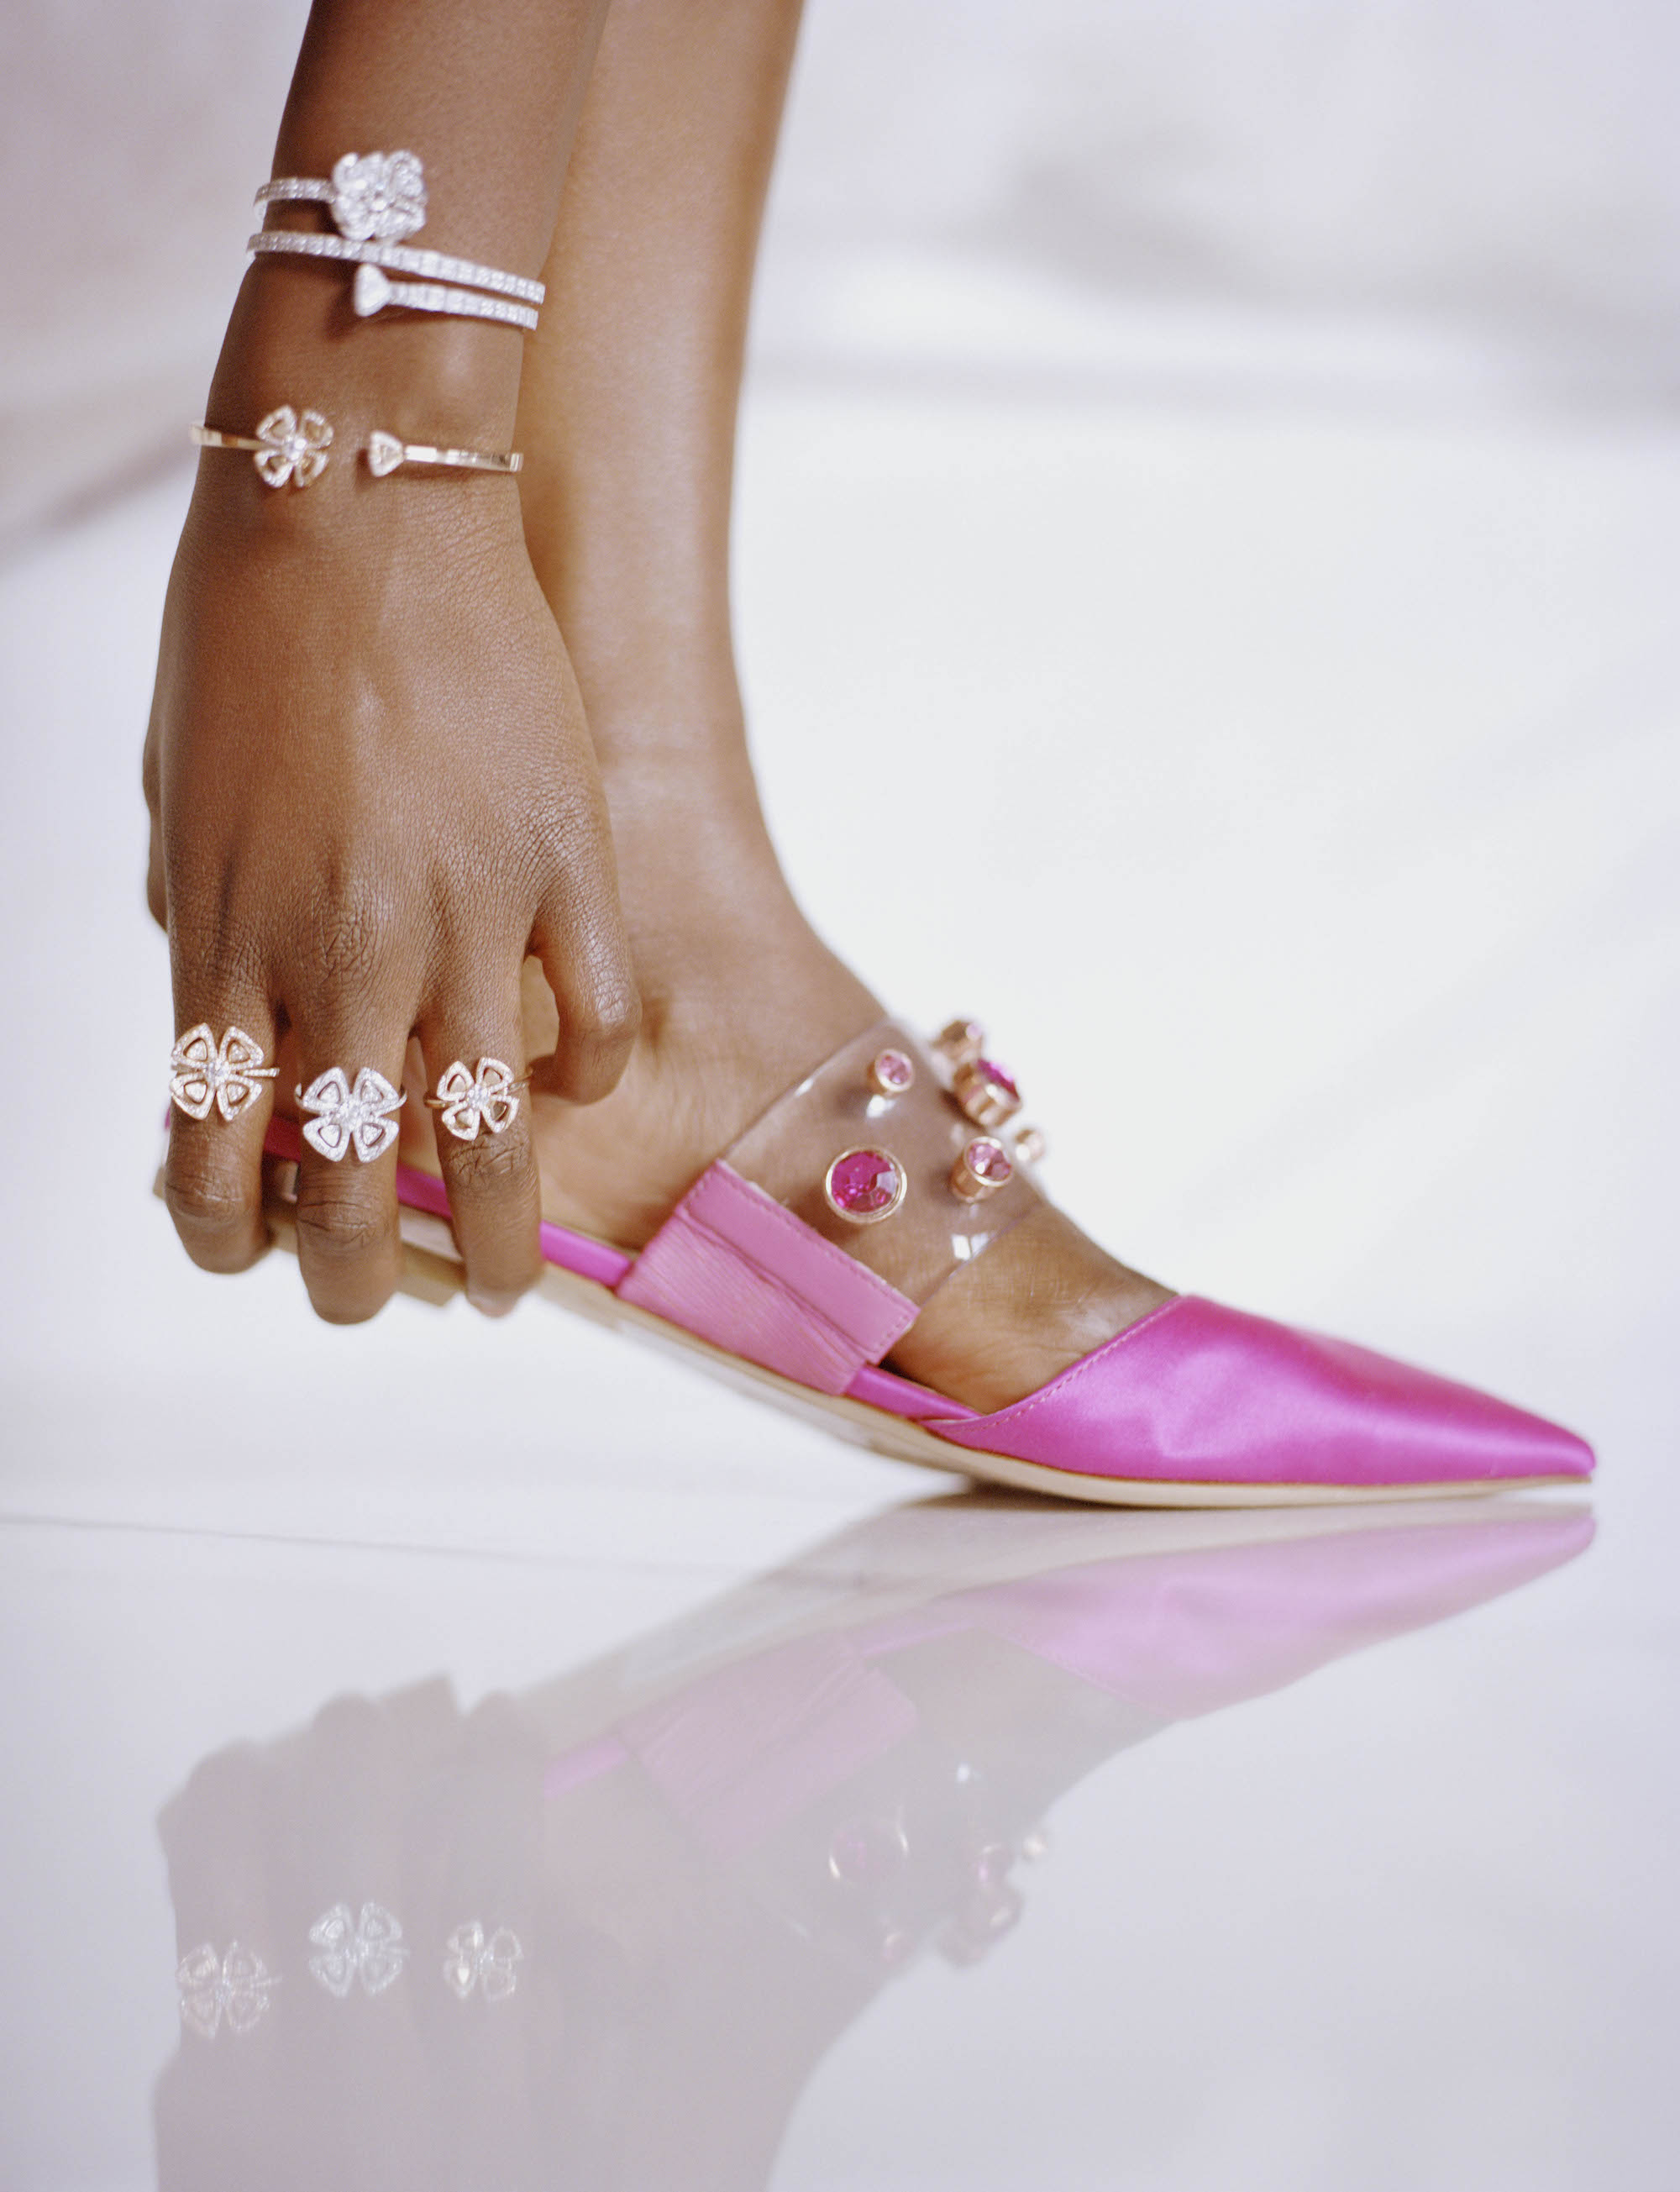 Bulgari's Fiorever fashion editorial in the Spring 19 pink slipper